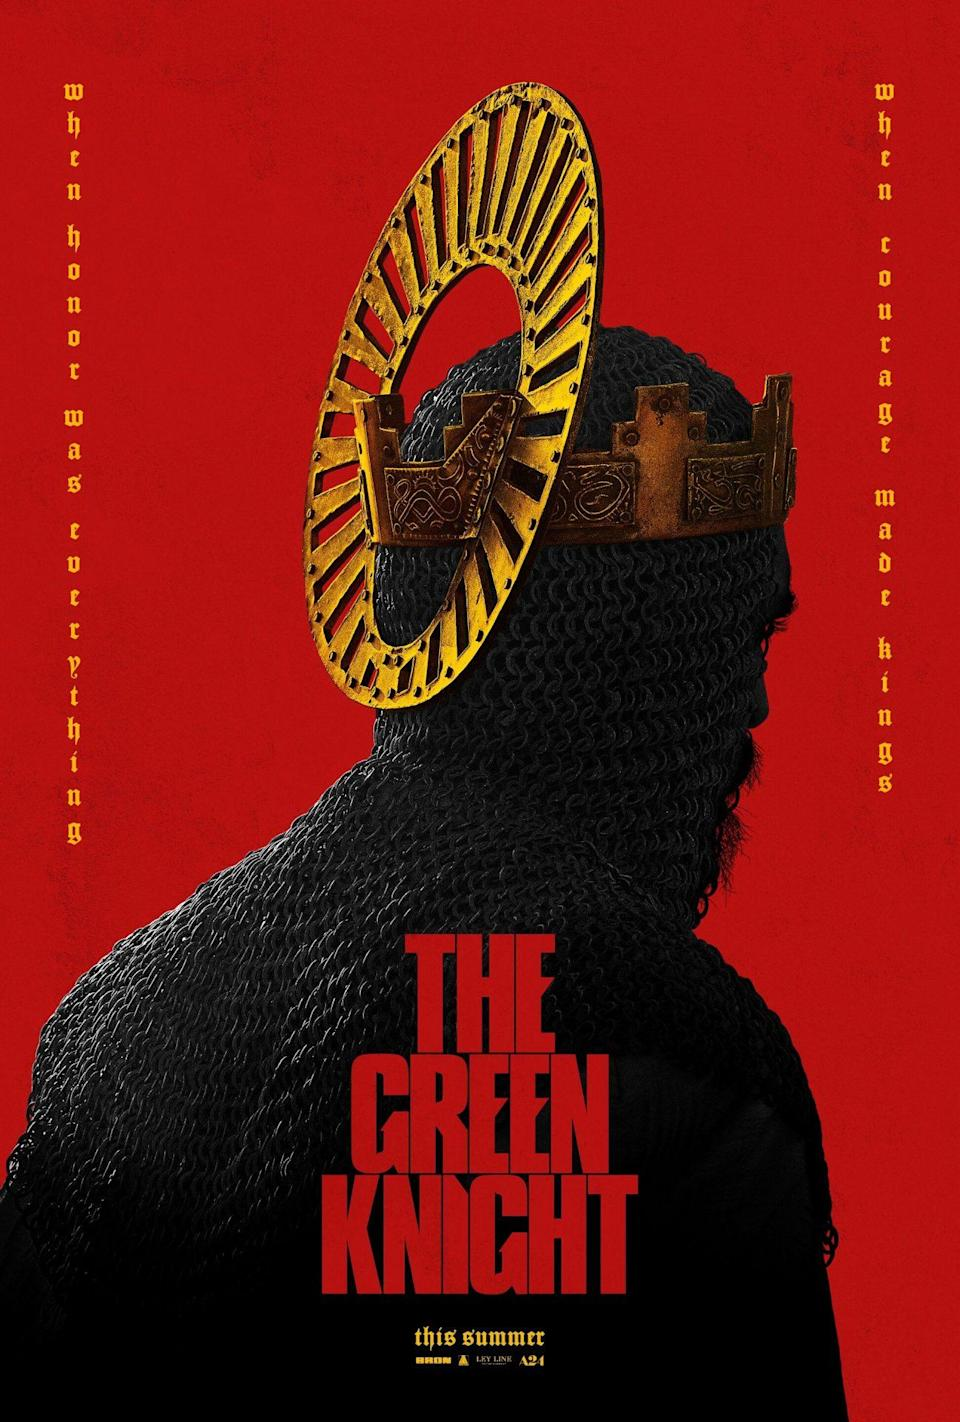 Teaser poster for A24's The Green Knight.